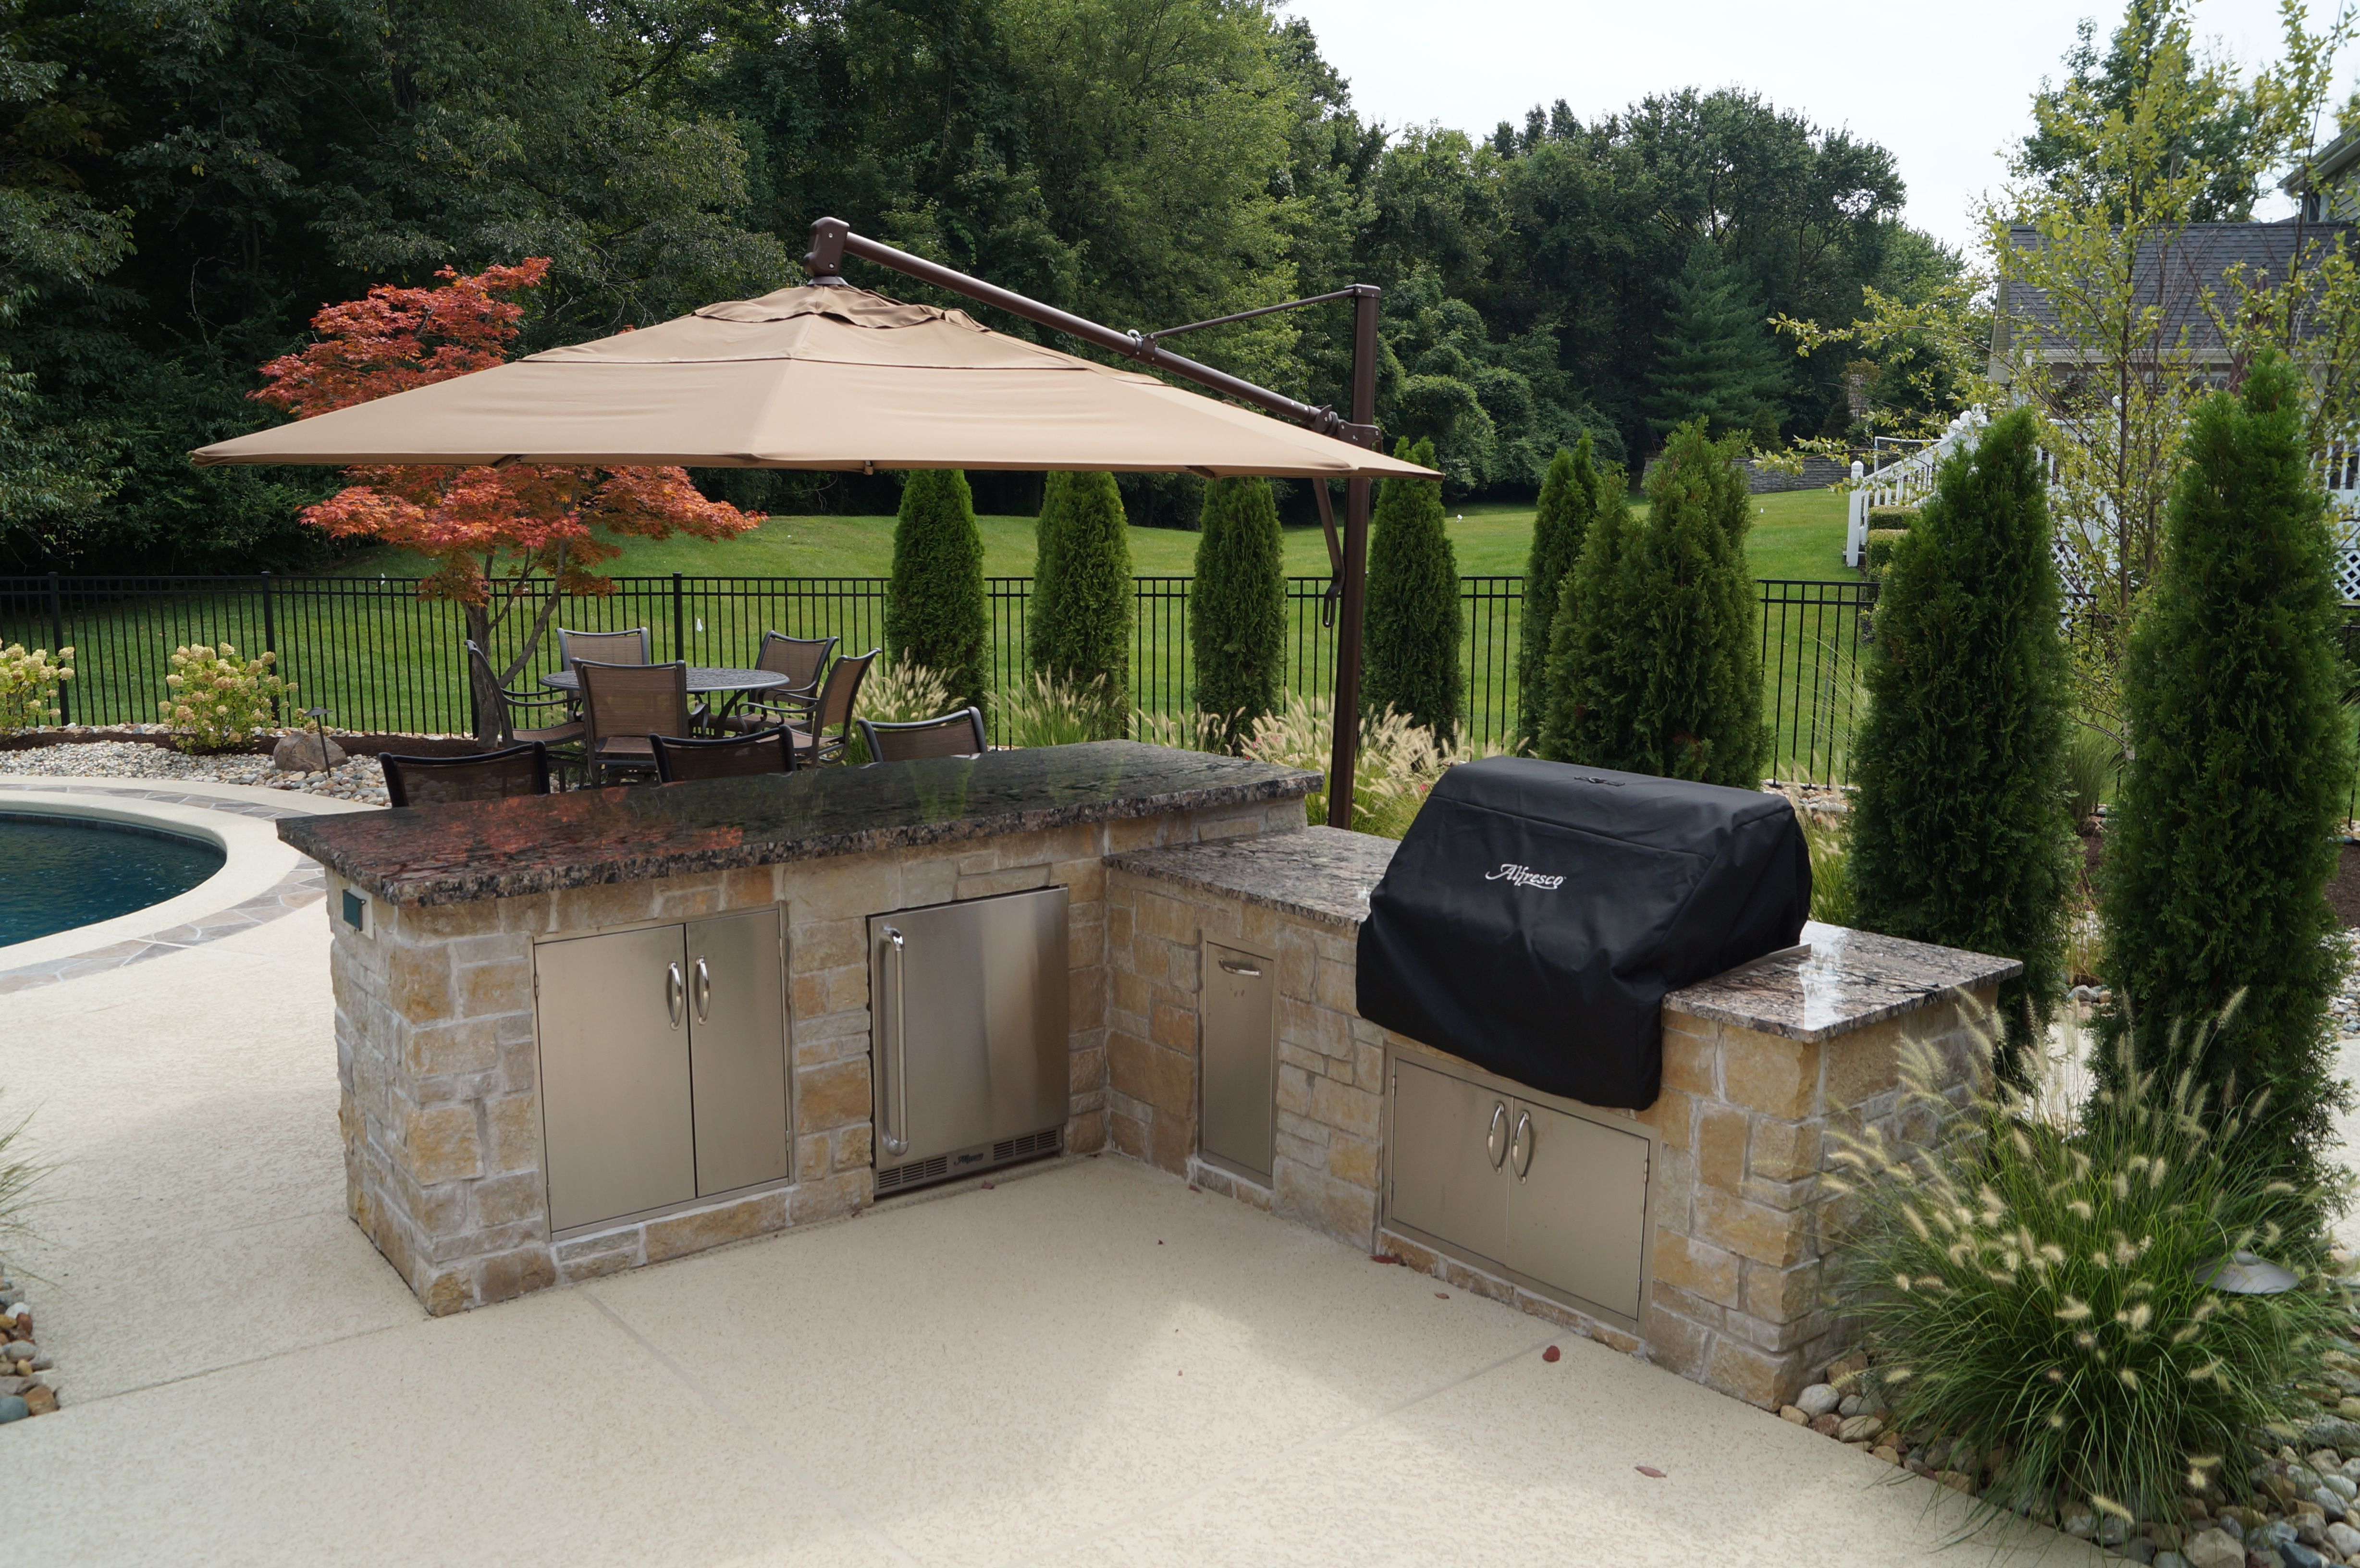 Outdoor kitchen. Complete with fridge, storage, and a